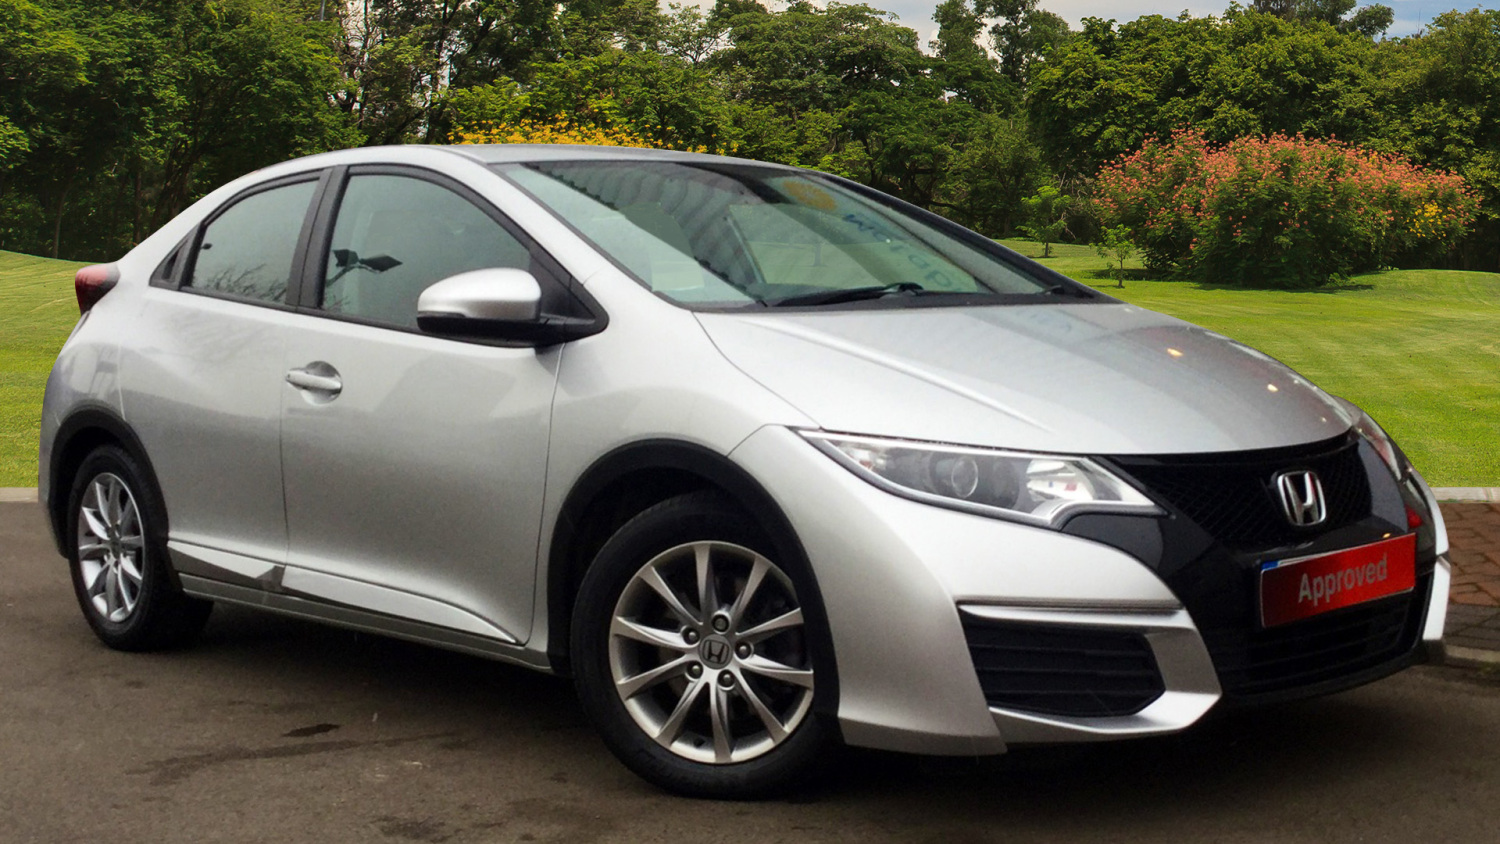 used honda civic 1 6 i dtec s 5dr nav diesel hatchback. Black Bedroom Furniture Sets. Home Design Ideas